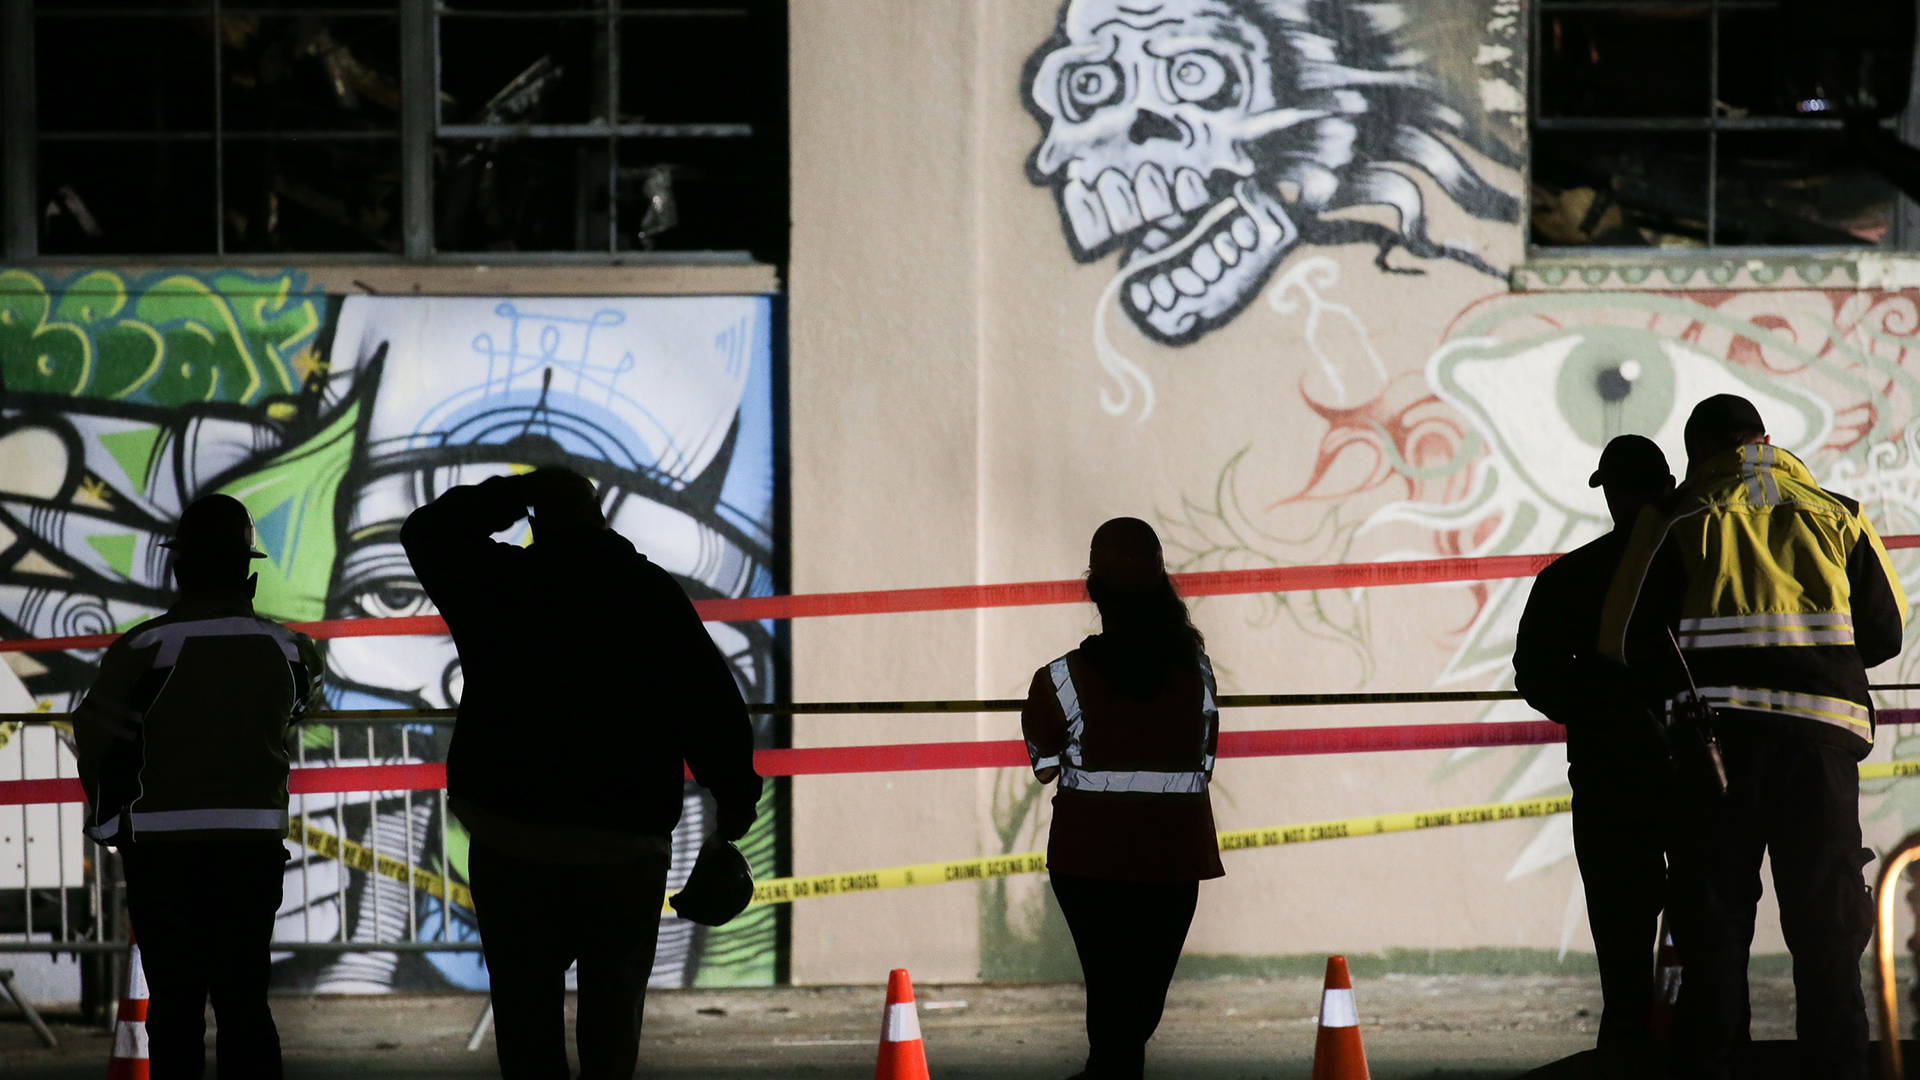 Workers and emergency responders look at a warehouse in which a fire claimed the lives of at least thirty-six people on Dec. 5, 2016 in Oakland, California.  Photo: Elijah Nouvelage/Getty Images